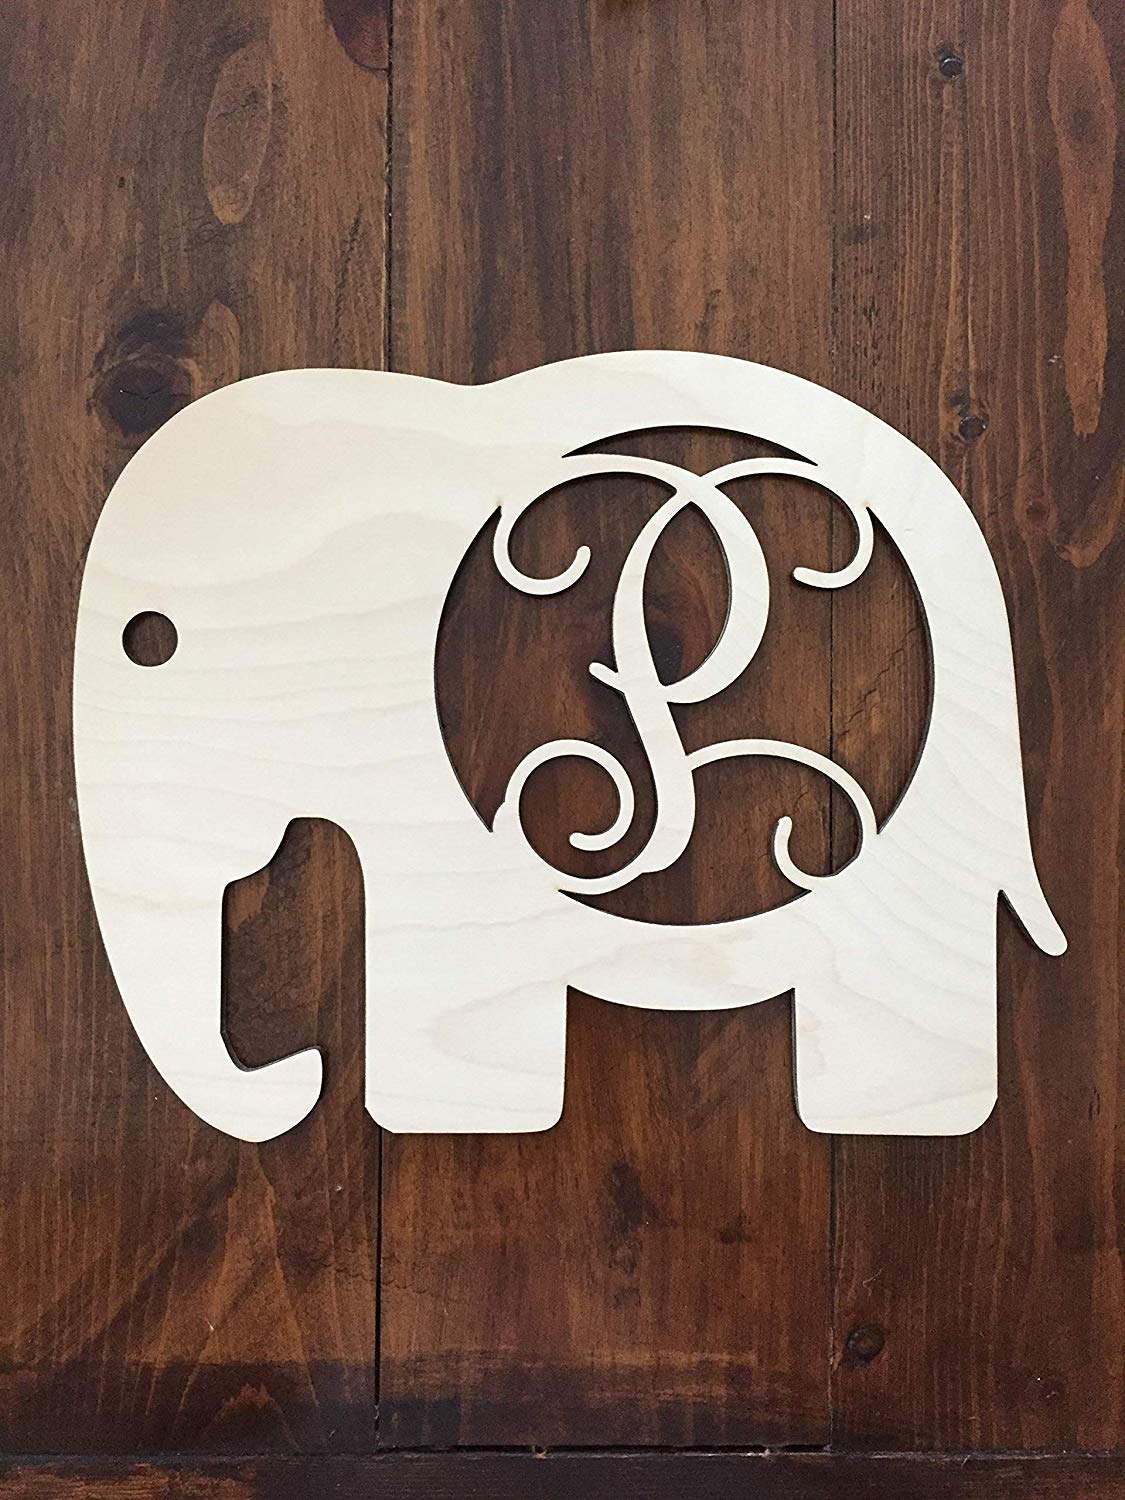 Unfinished Wood Elephant Monogram Hanger - Baby's Room Wall Hanger - Elephant Wall Hanging - Elephant Door Hanger - Wooden Elephant Cutout